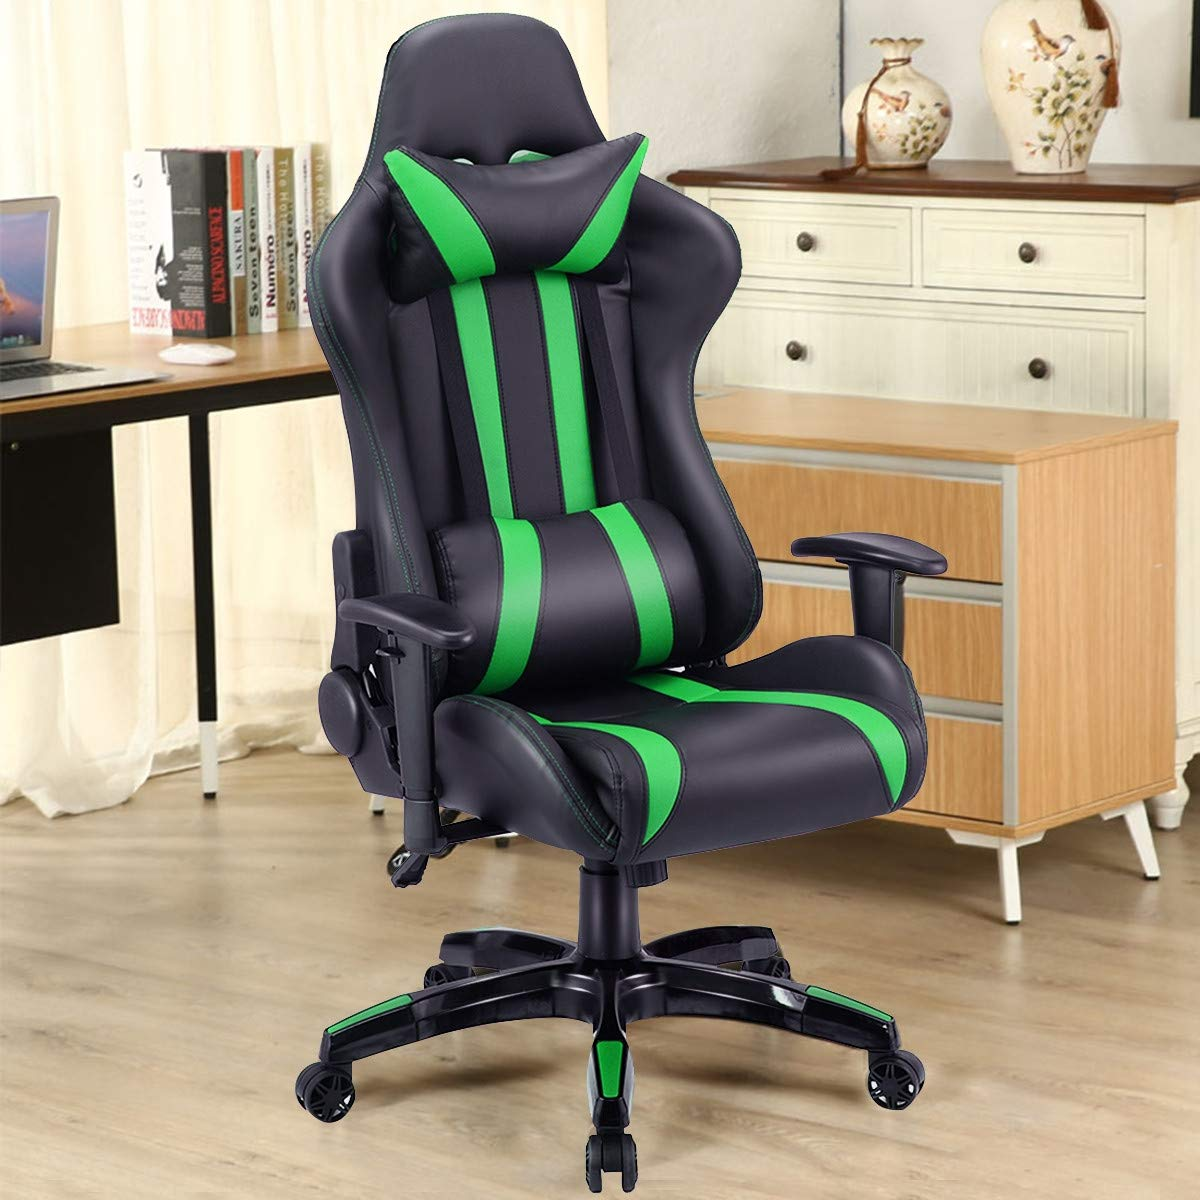 Modern Style Executive High-Back Racing Gaming Chair, Ergonomic, and Adjustable Back, Adjustable Armrest and Seat Height,360-Degree Swivel, PU Leather, Fade-Resistant and Easy to Clean Green by Caraya